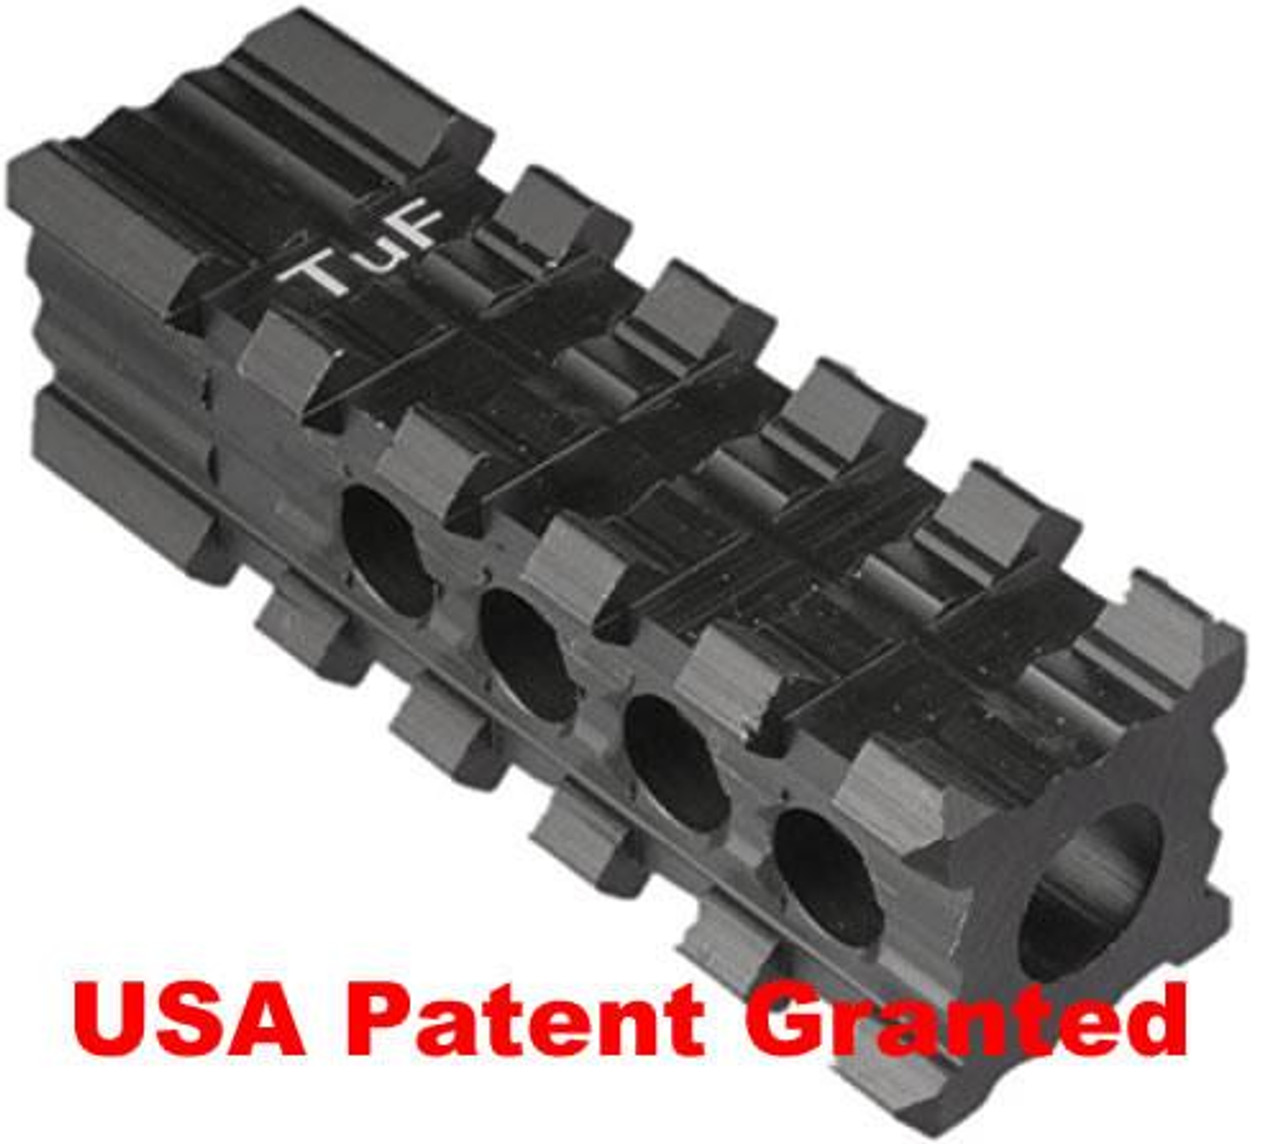 Tufforce 4-side Rail Muzzle Brake for AR15 / M16 / M4, 5 slots, Fit for  1/2